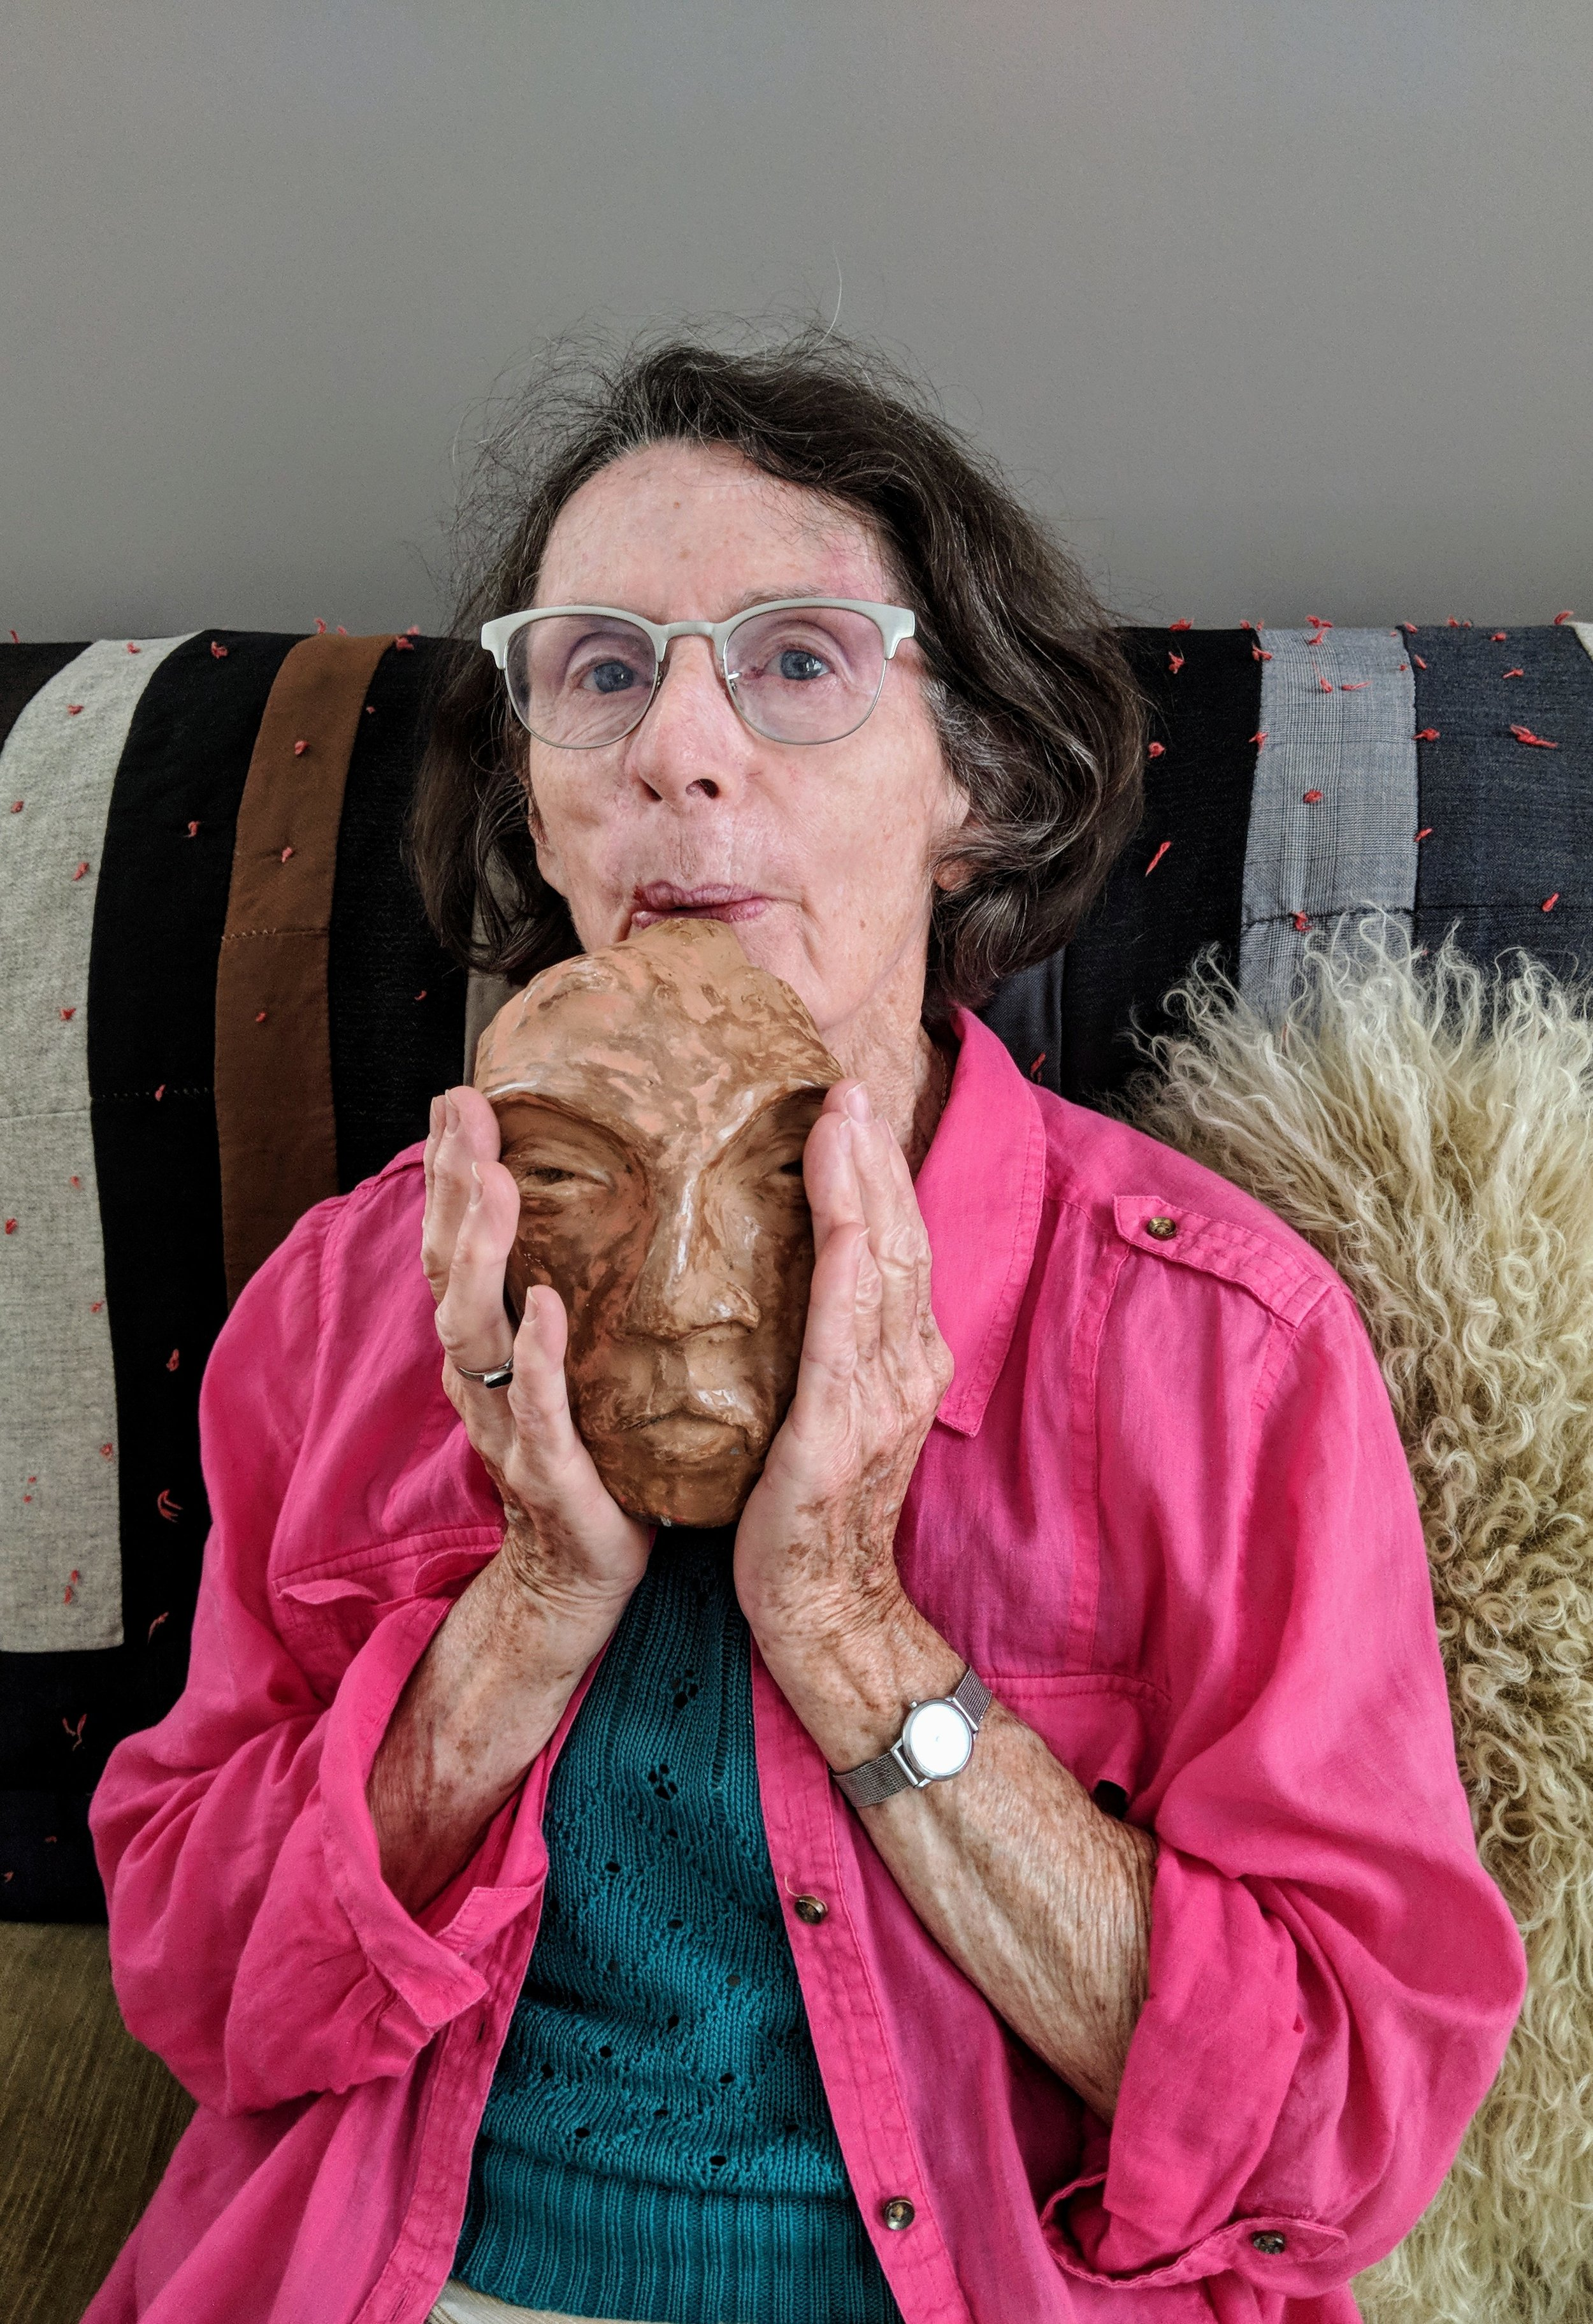 My mother, Susan Feindel, plays a flute she sculpted in the shape of her husband's face (photo from August 2018)